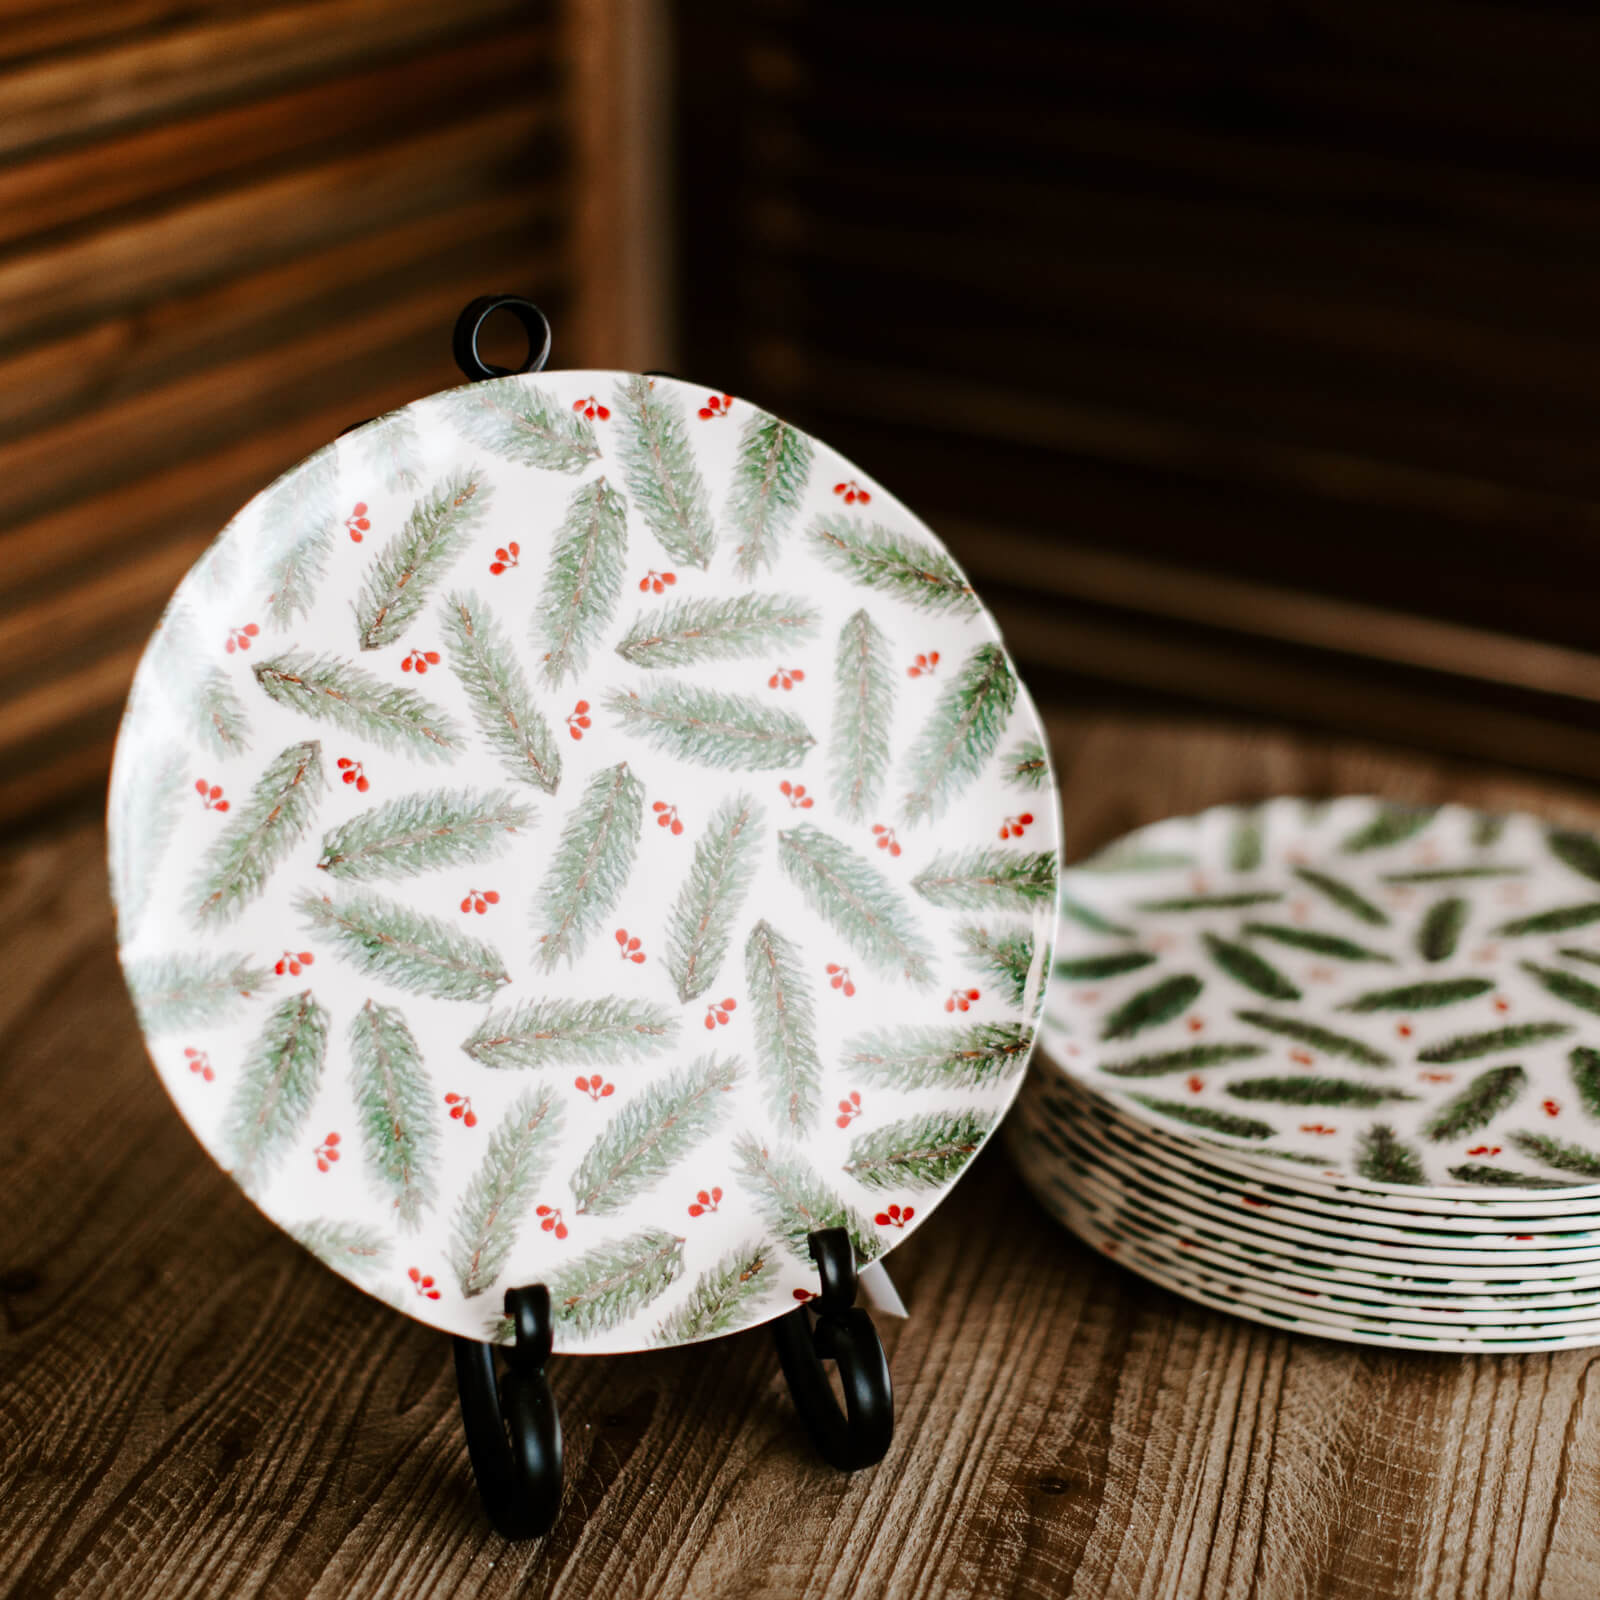 10 inch botanical plate with pine branches and berries pattern for holiday table